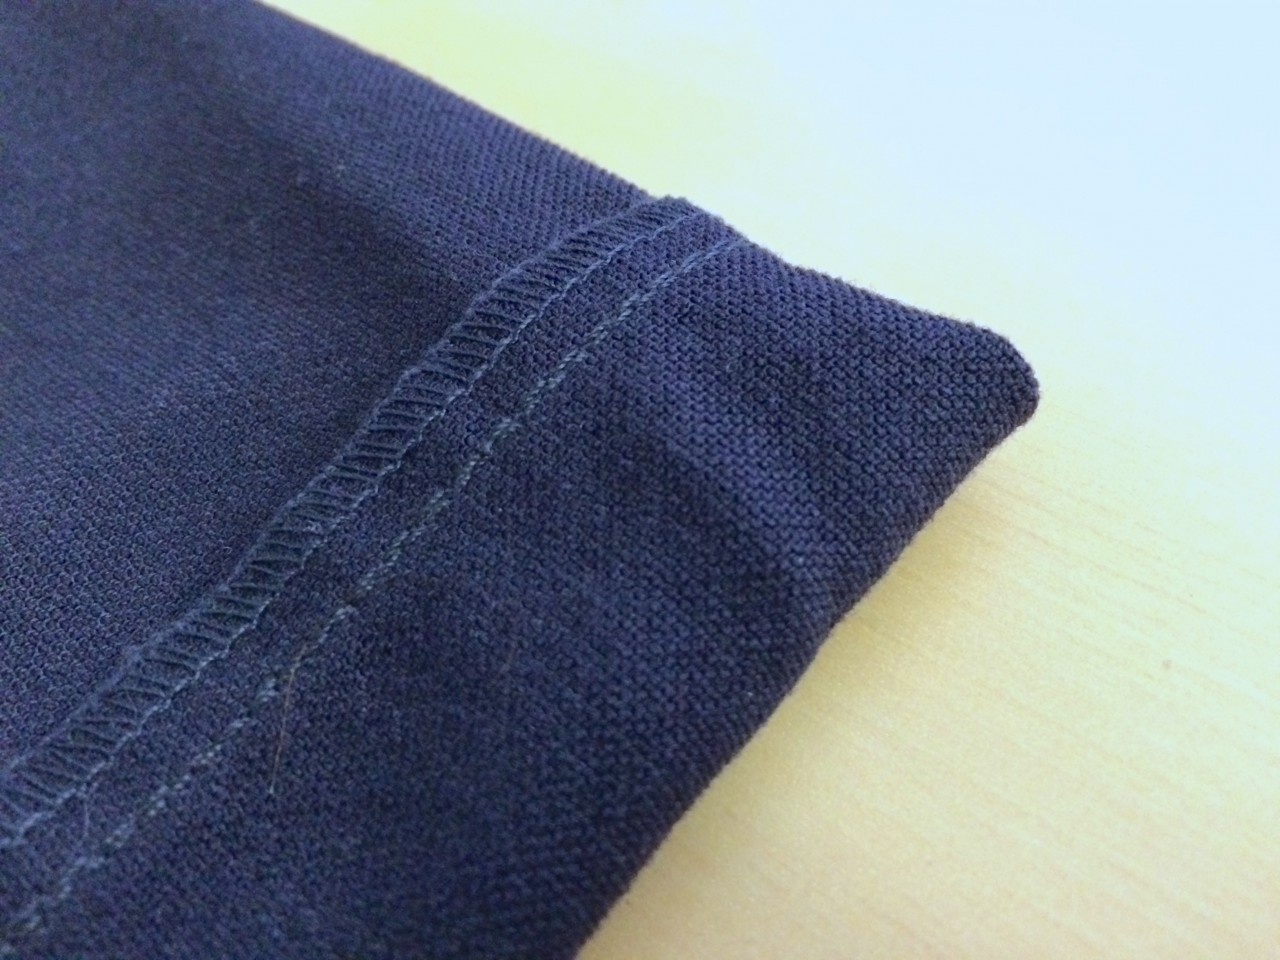 Slim Dungarees interior fabric close up